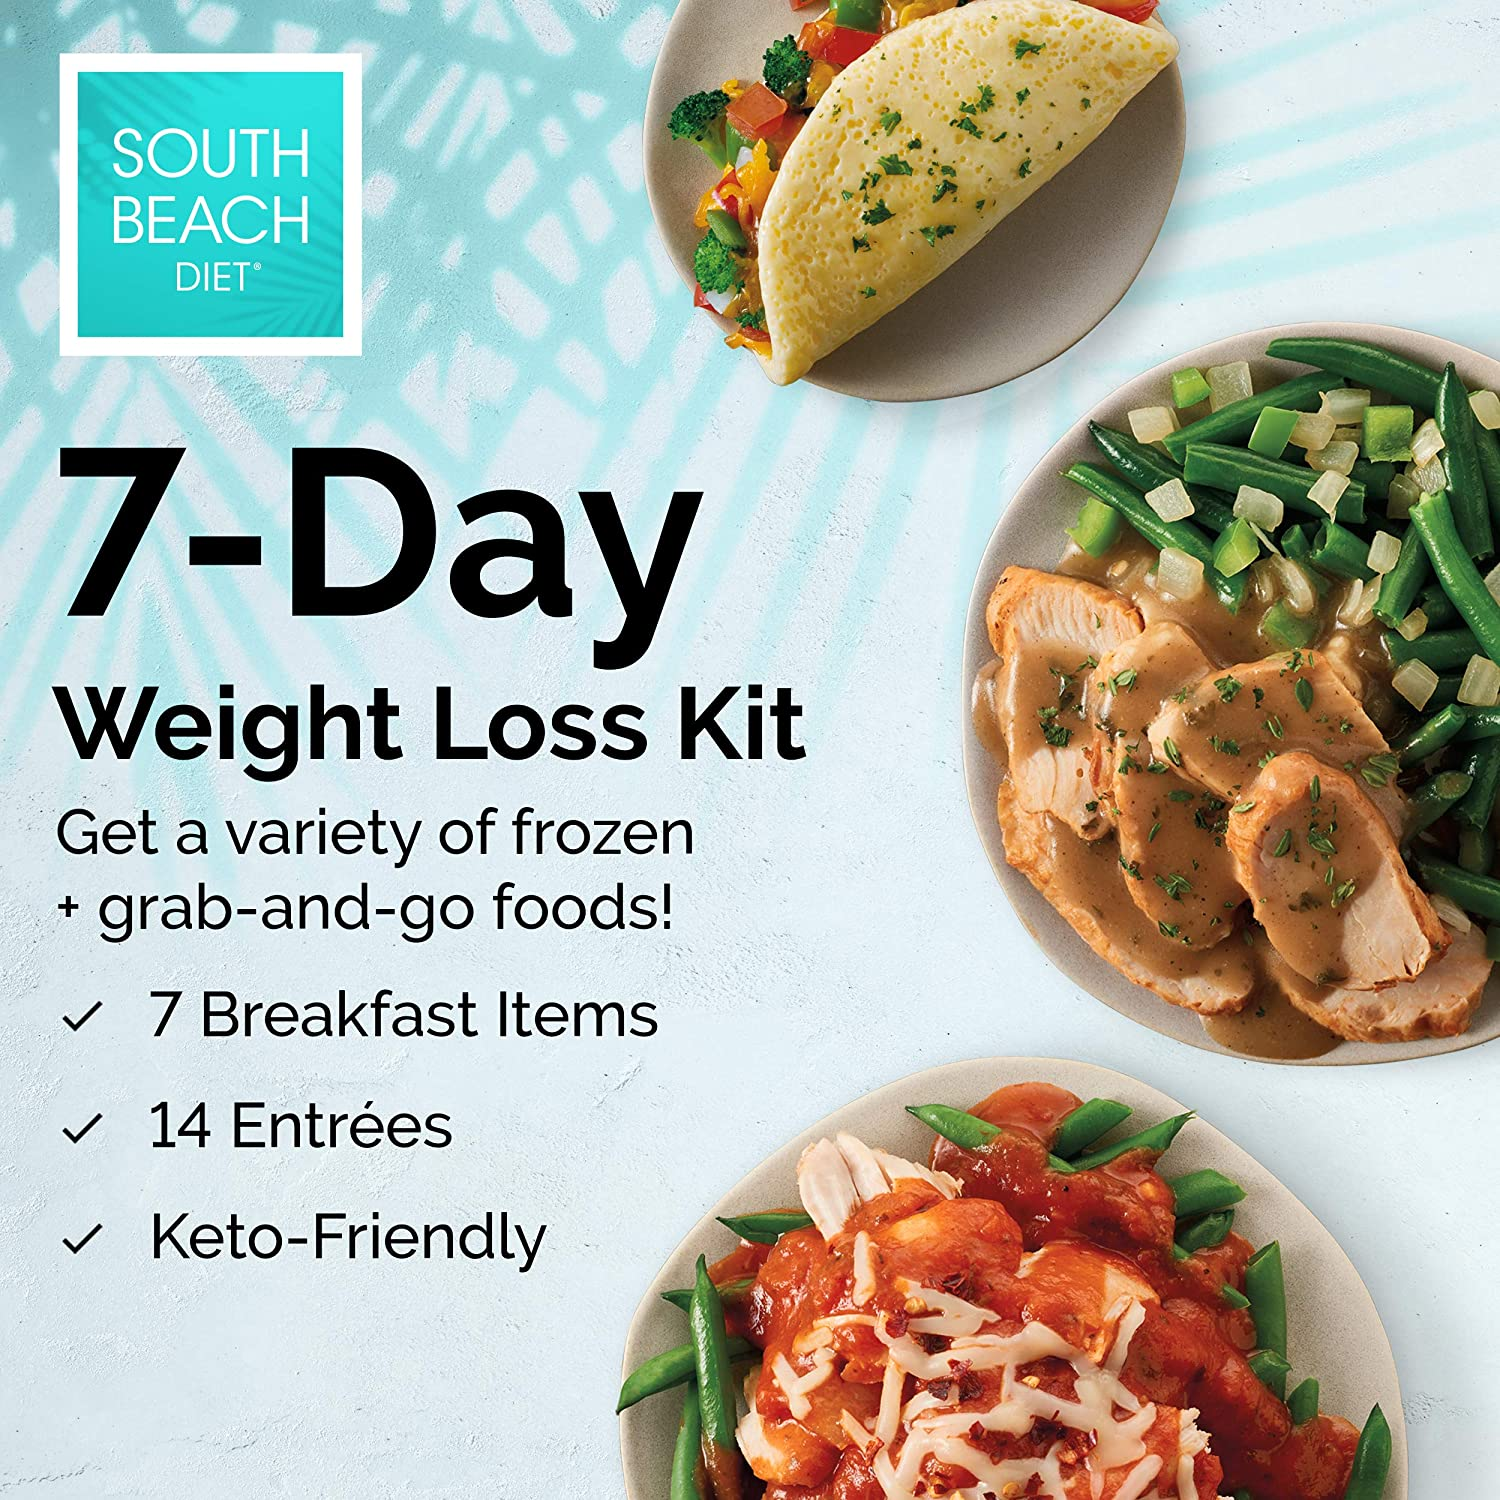 where to purchase south beach diet products